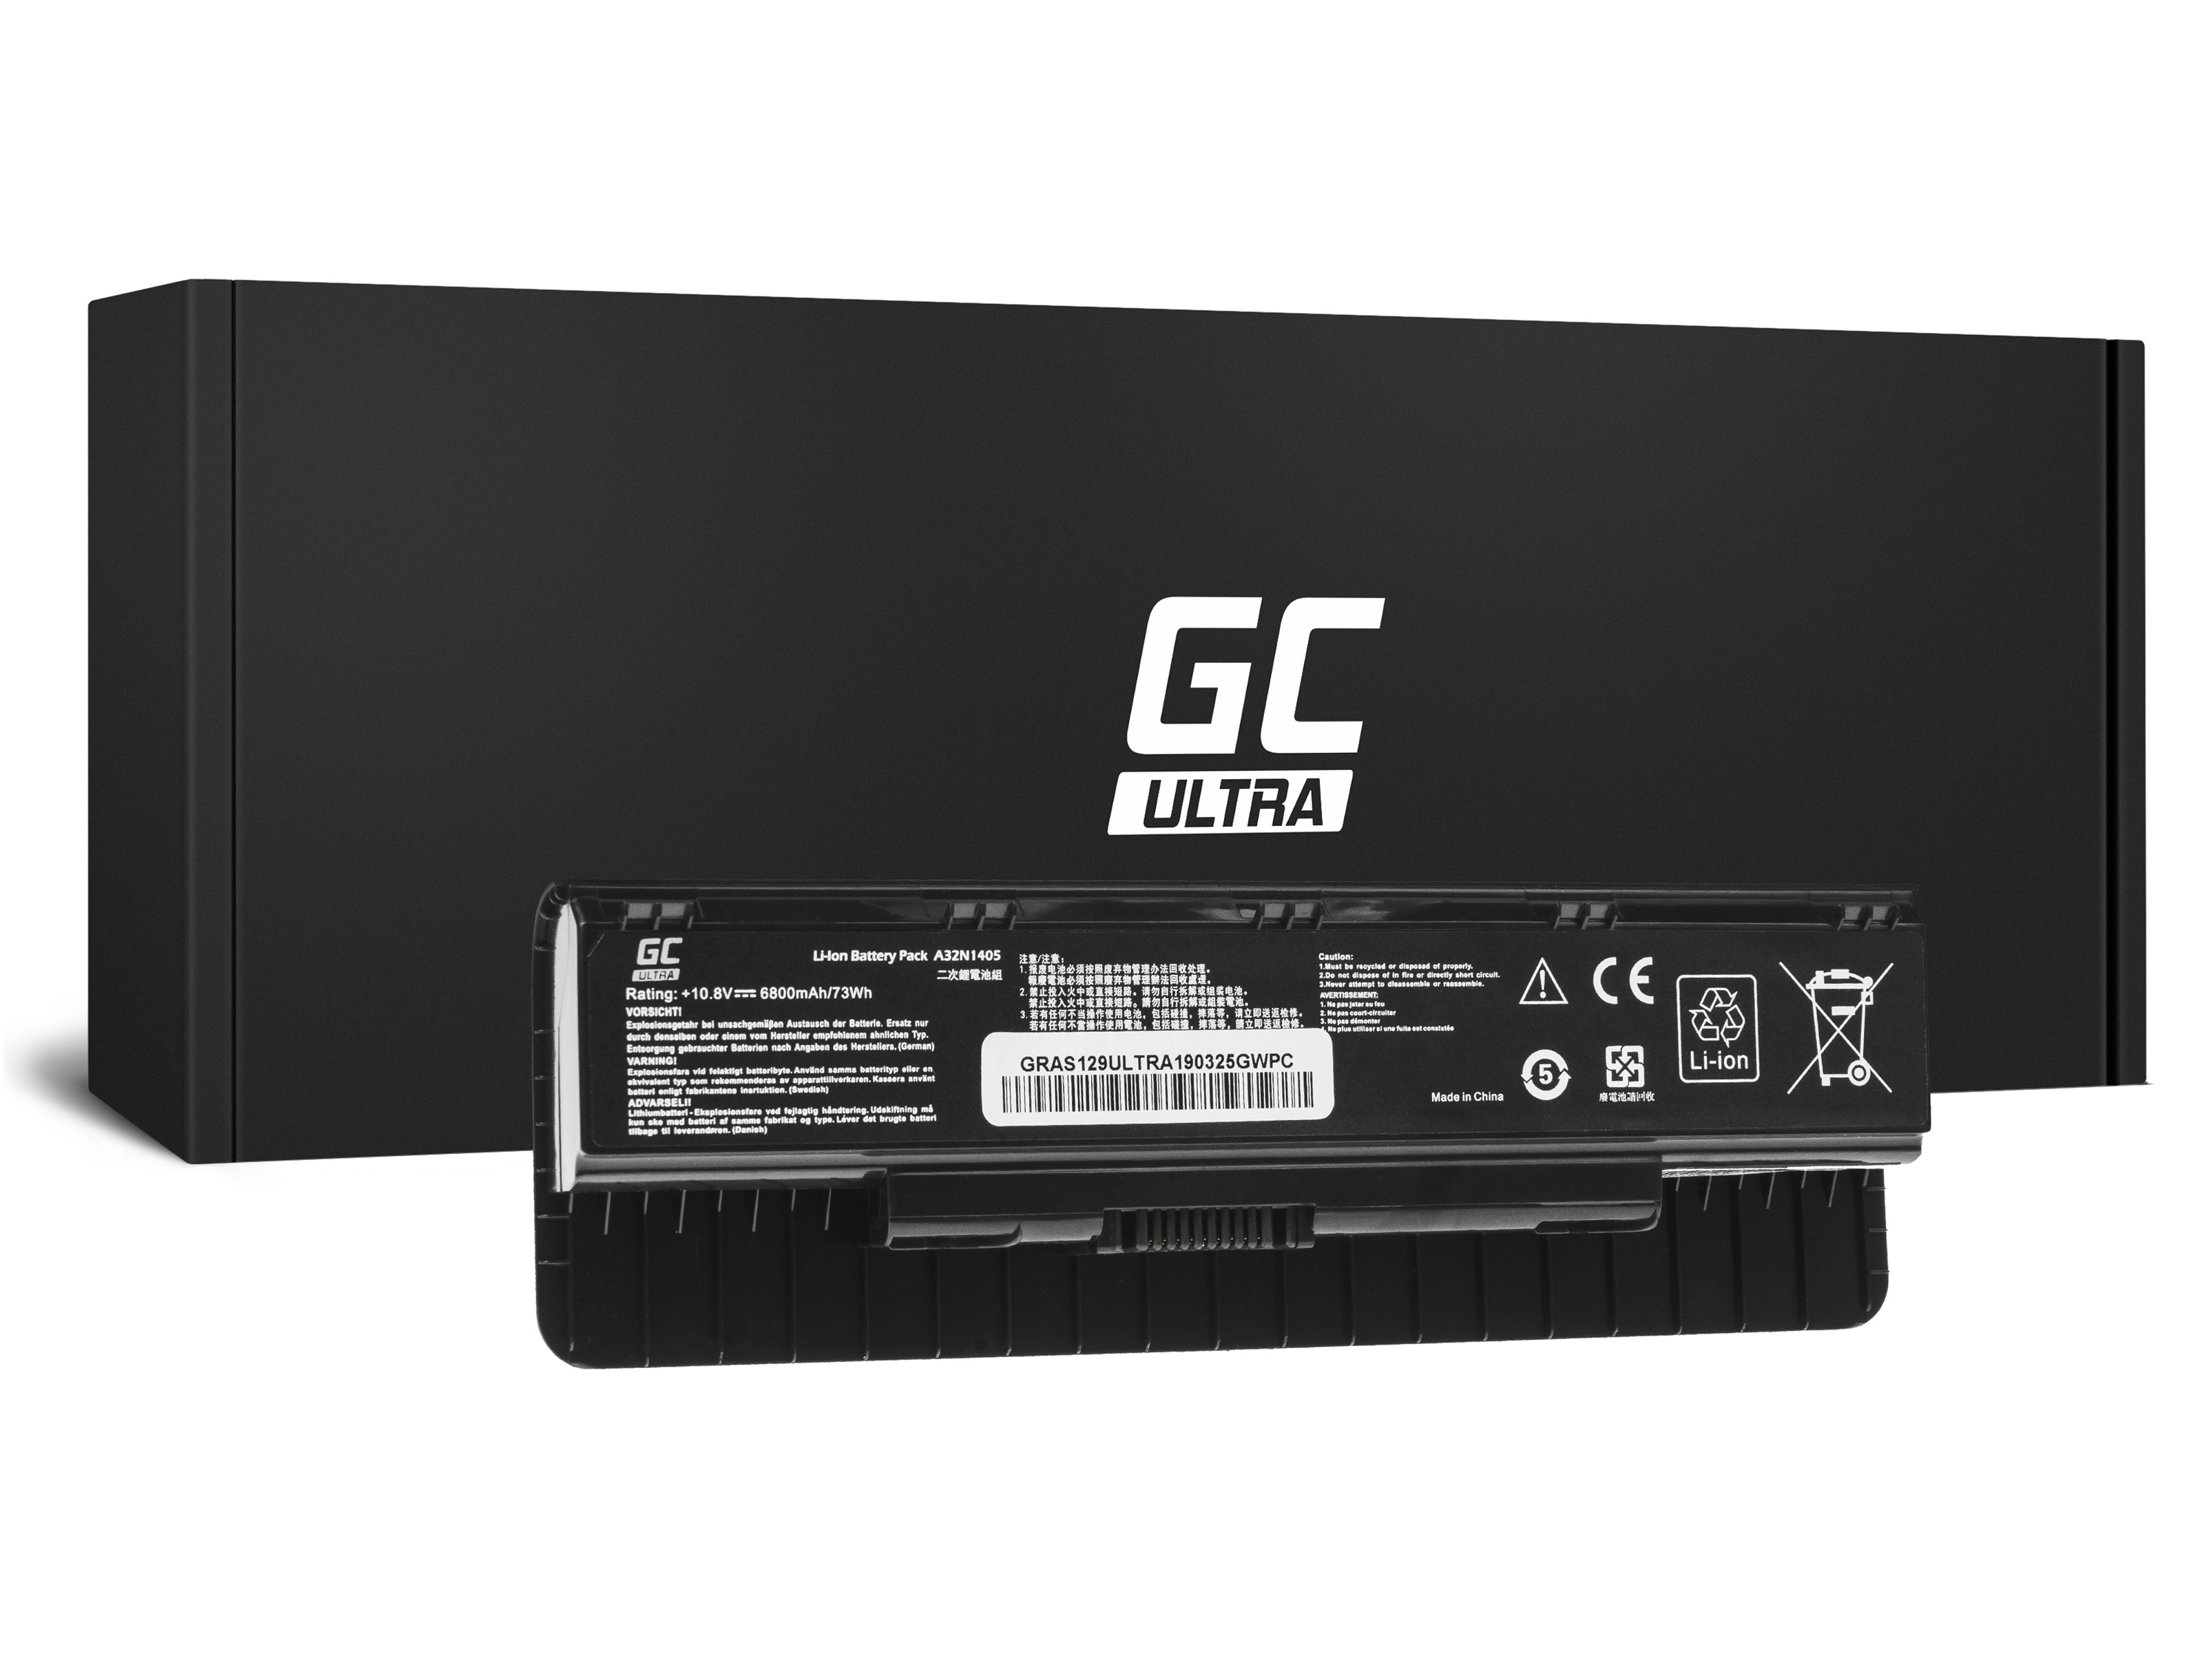 Green Cell ULTRA Battery A32N1405 for Asus G551 G551J G551JM G551JW G771 G771J G771JM G771JW N551 N551J N551JM N551JW N551JX / 1